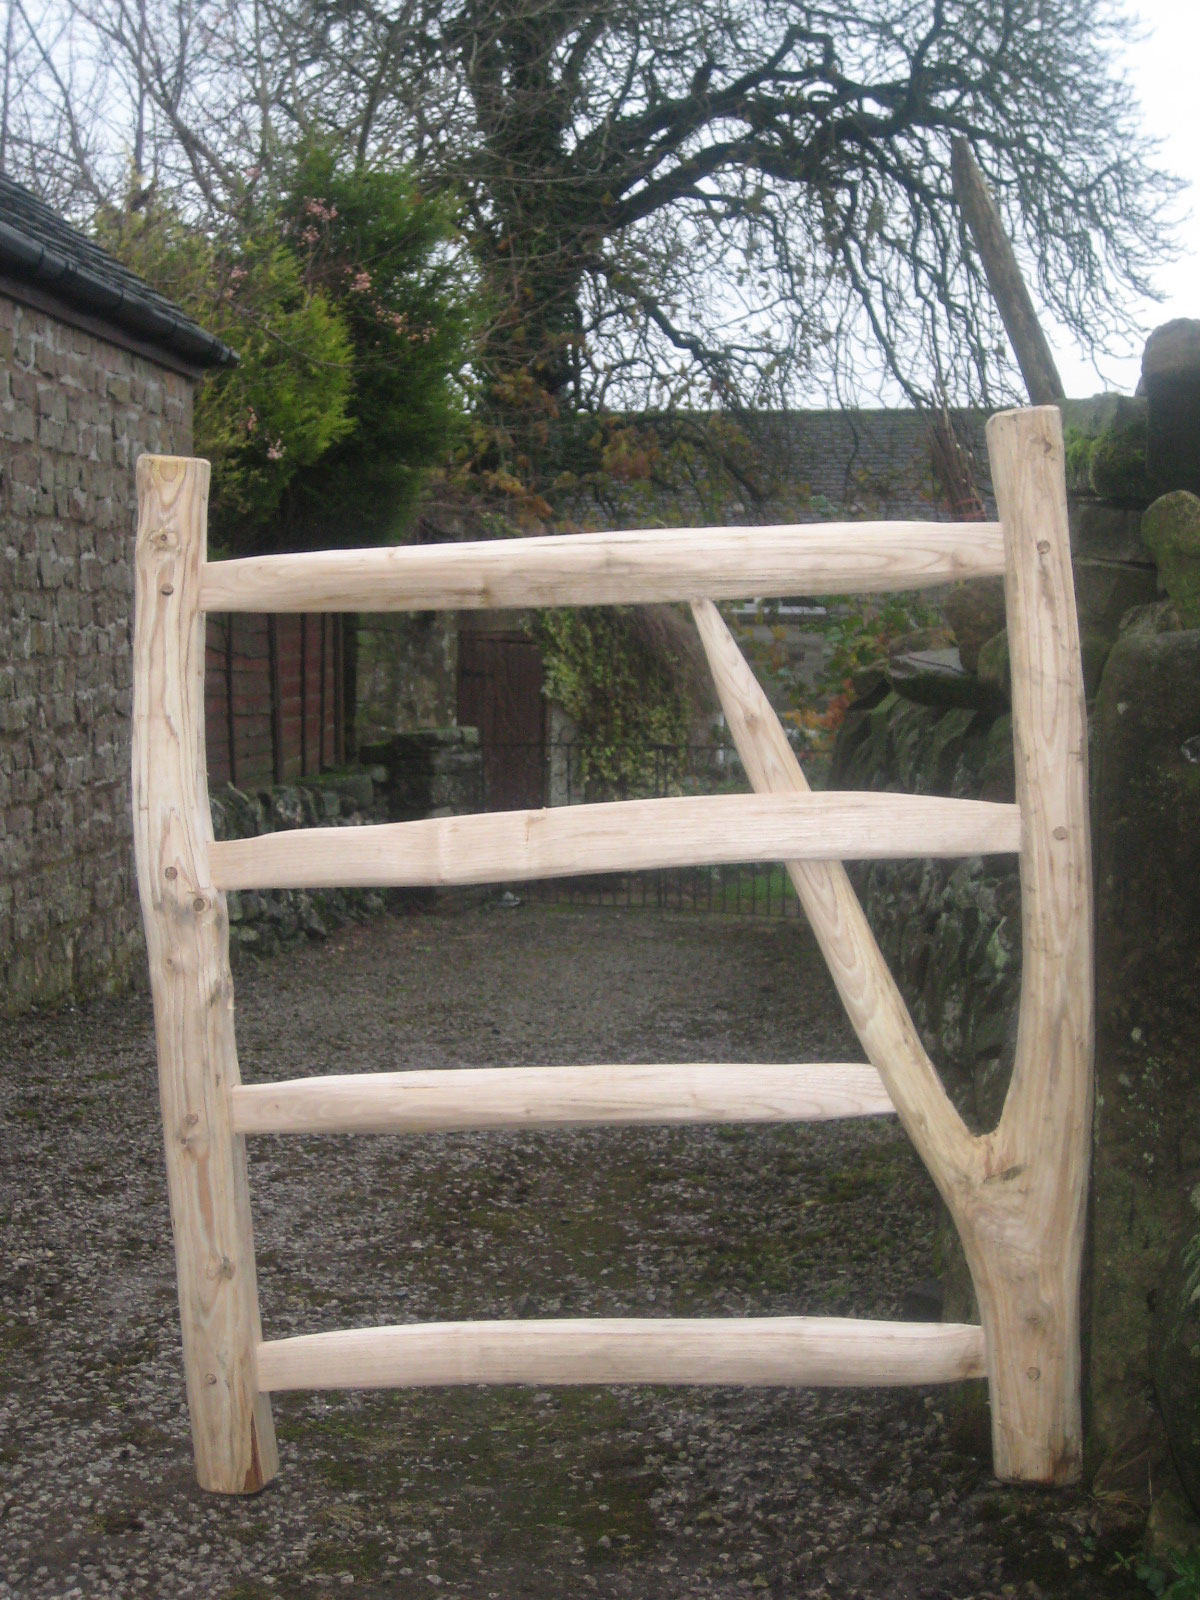 <span>Ref: F21</span><br>Cleft chestnut gate using a natural fork as the support brace, 3' x 3' wide; £396 inc VAT.